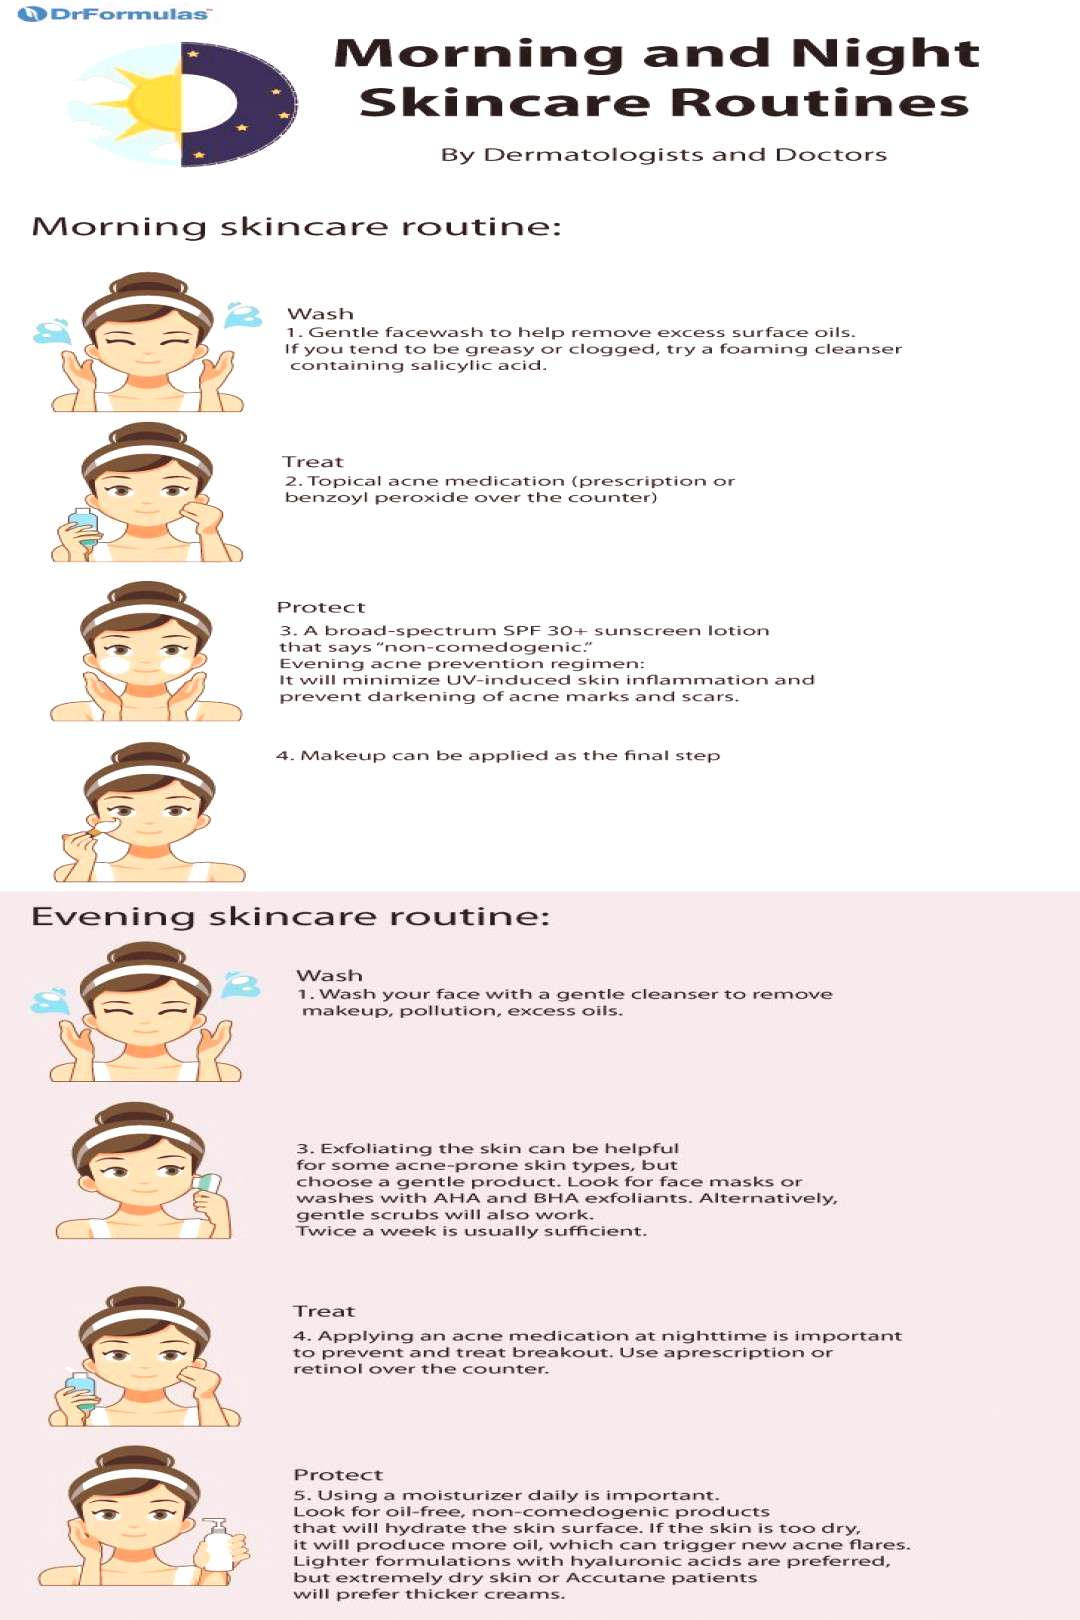 Along with a good face cleansing routine, an effective skincare regimen is also necessary to preven